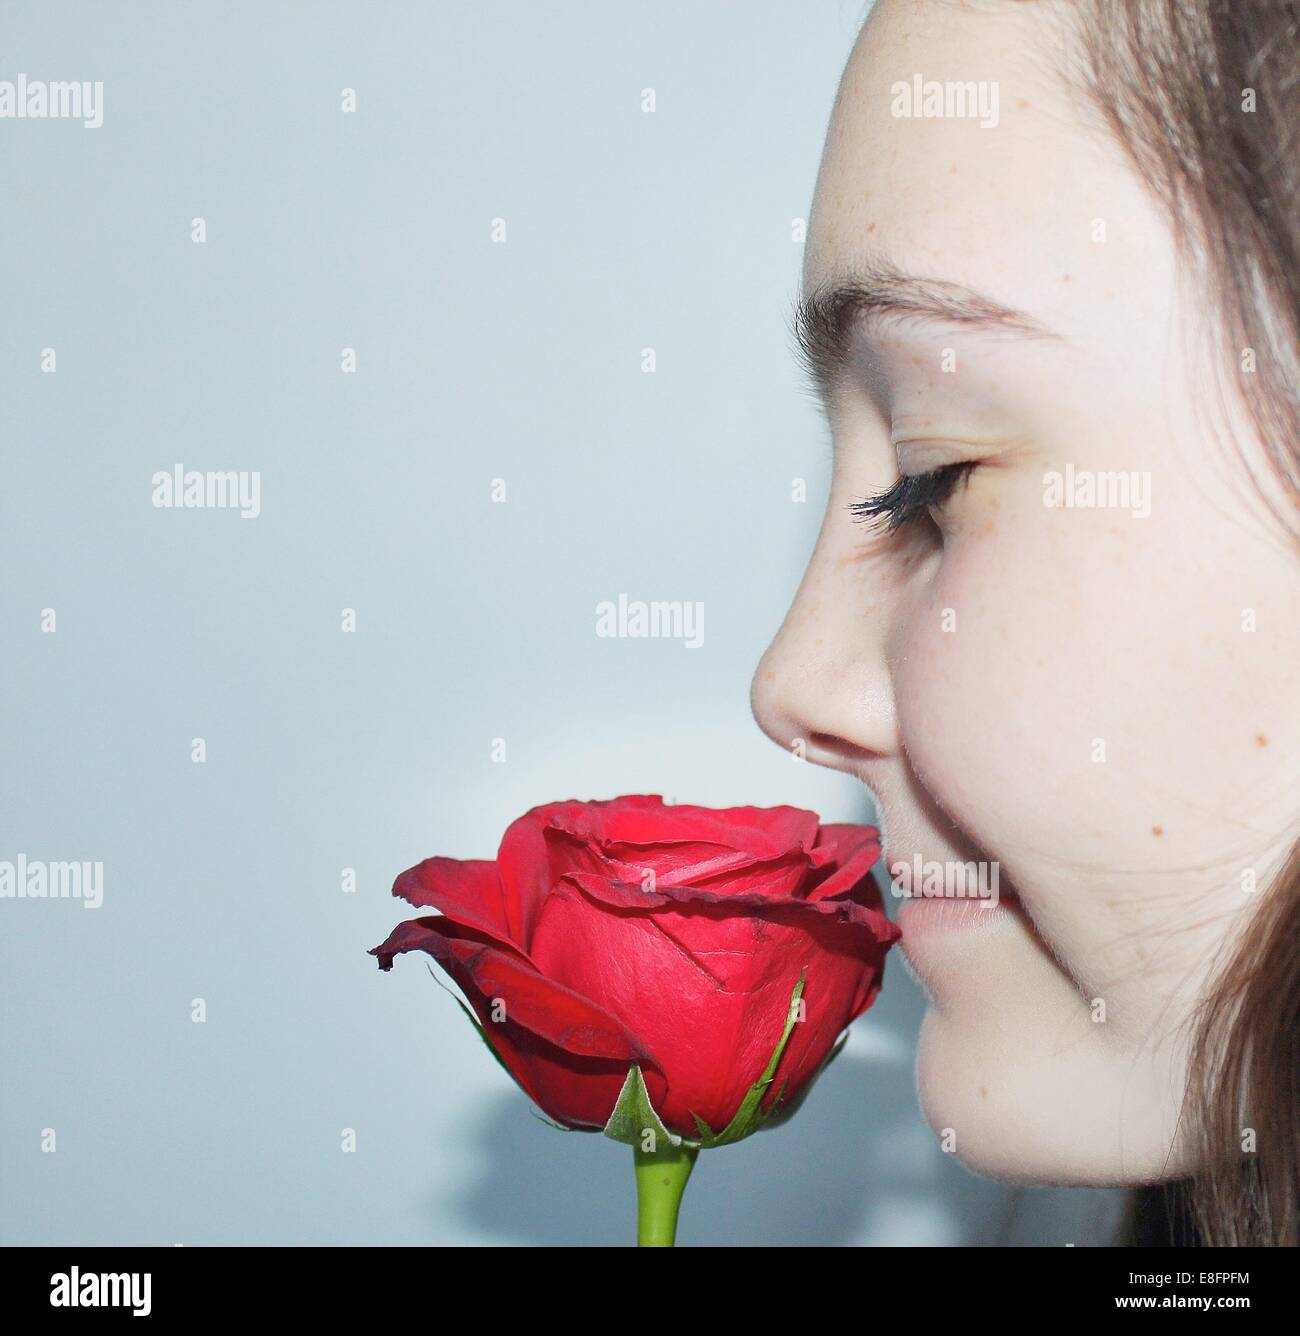 Close-up portrait of a teenage girl with eyes closed smelling a rose flower - Stock Image